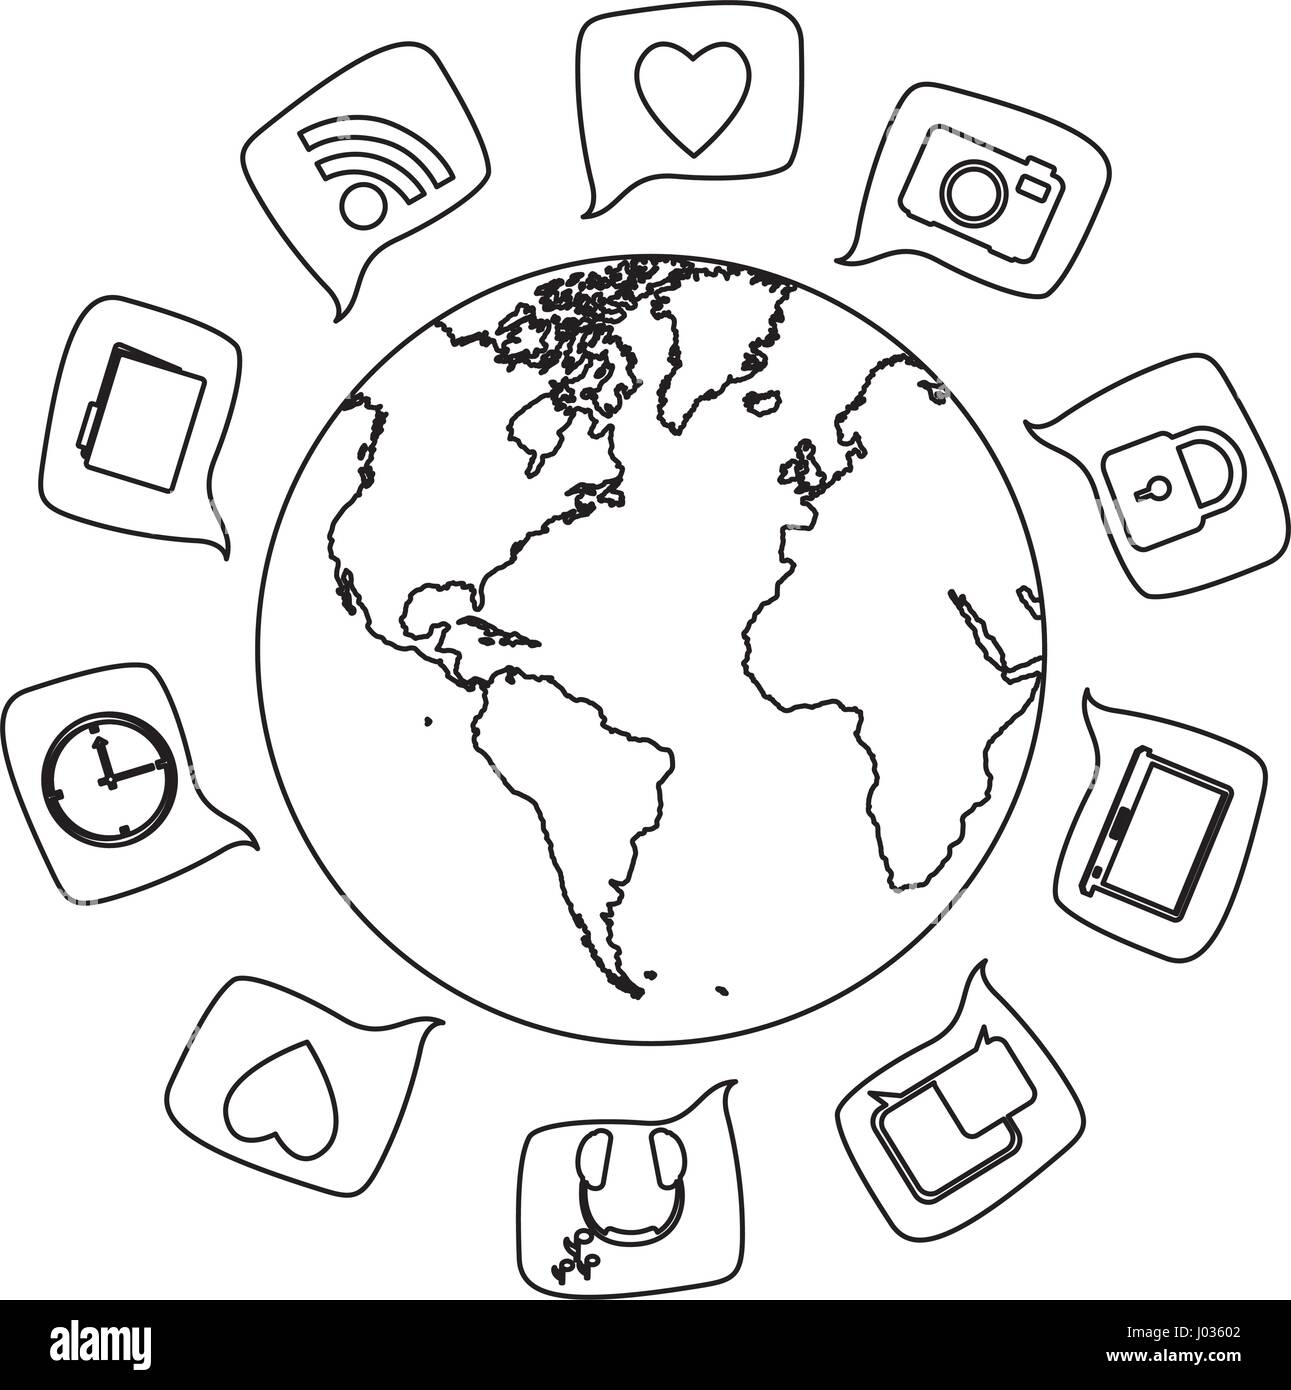 Silhouette world map globe with square dialogue social icons stock silhouette world map globe with square dialogue social icons gumiabroncs Choice Image